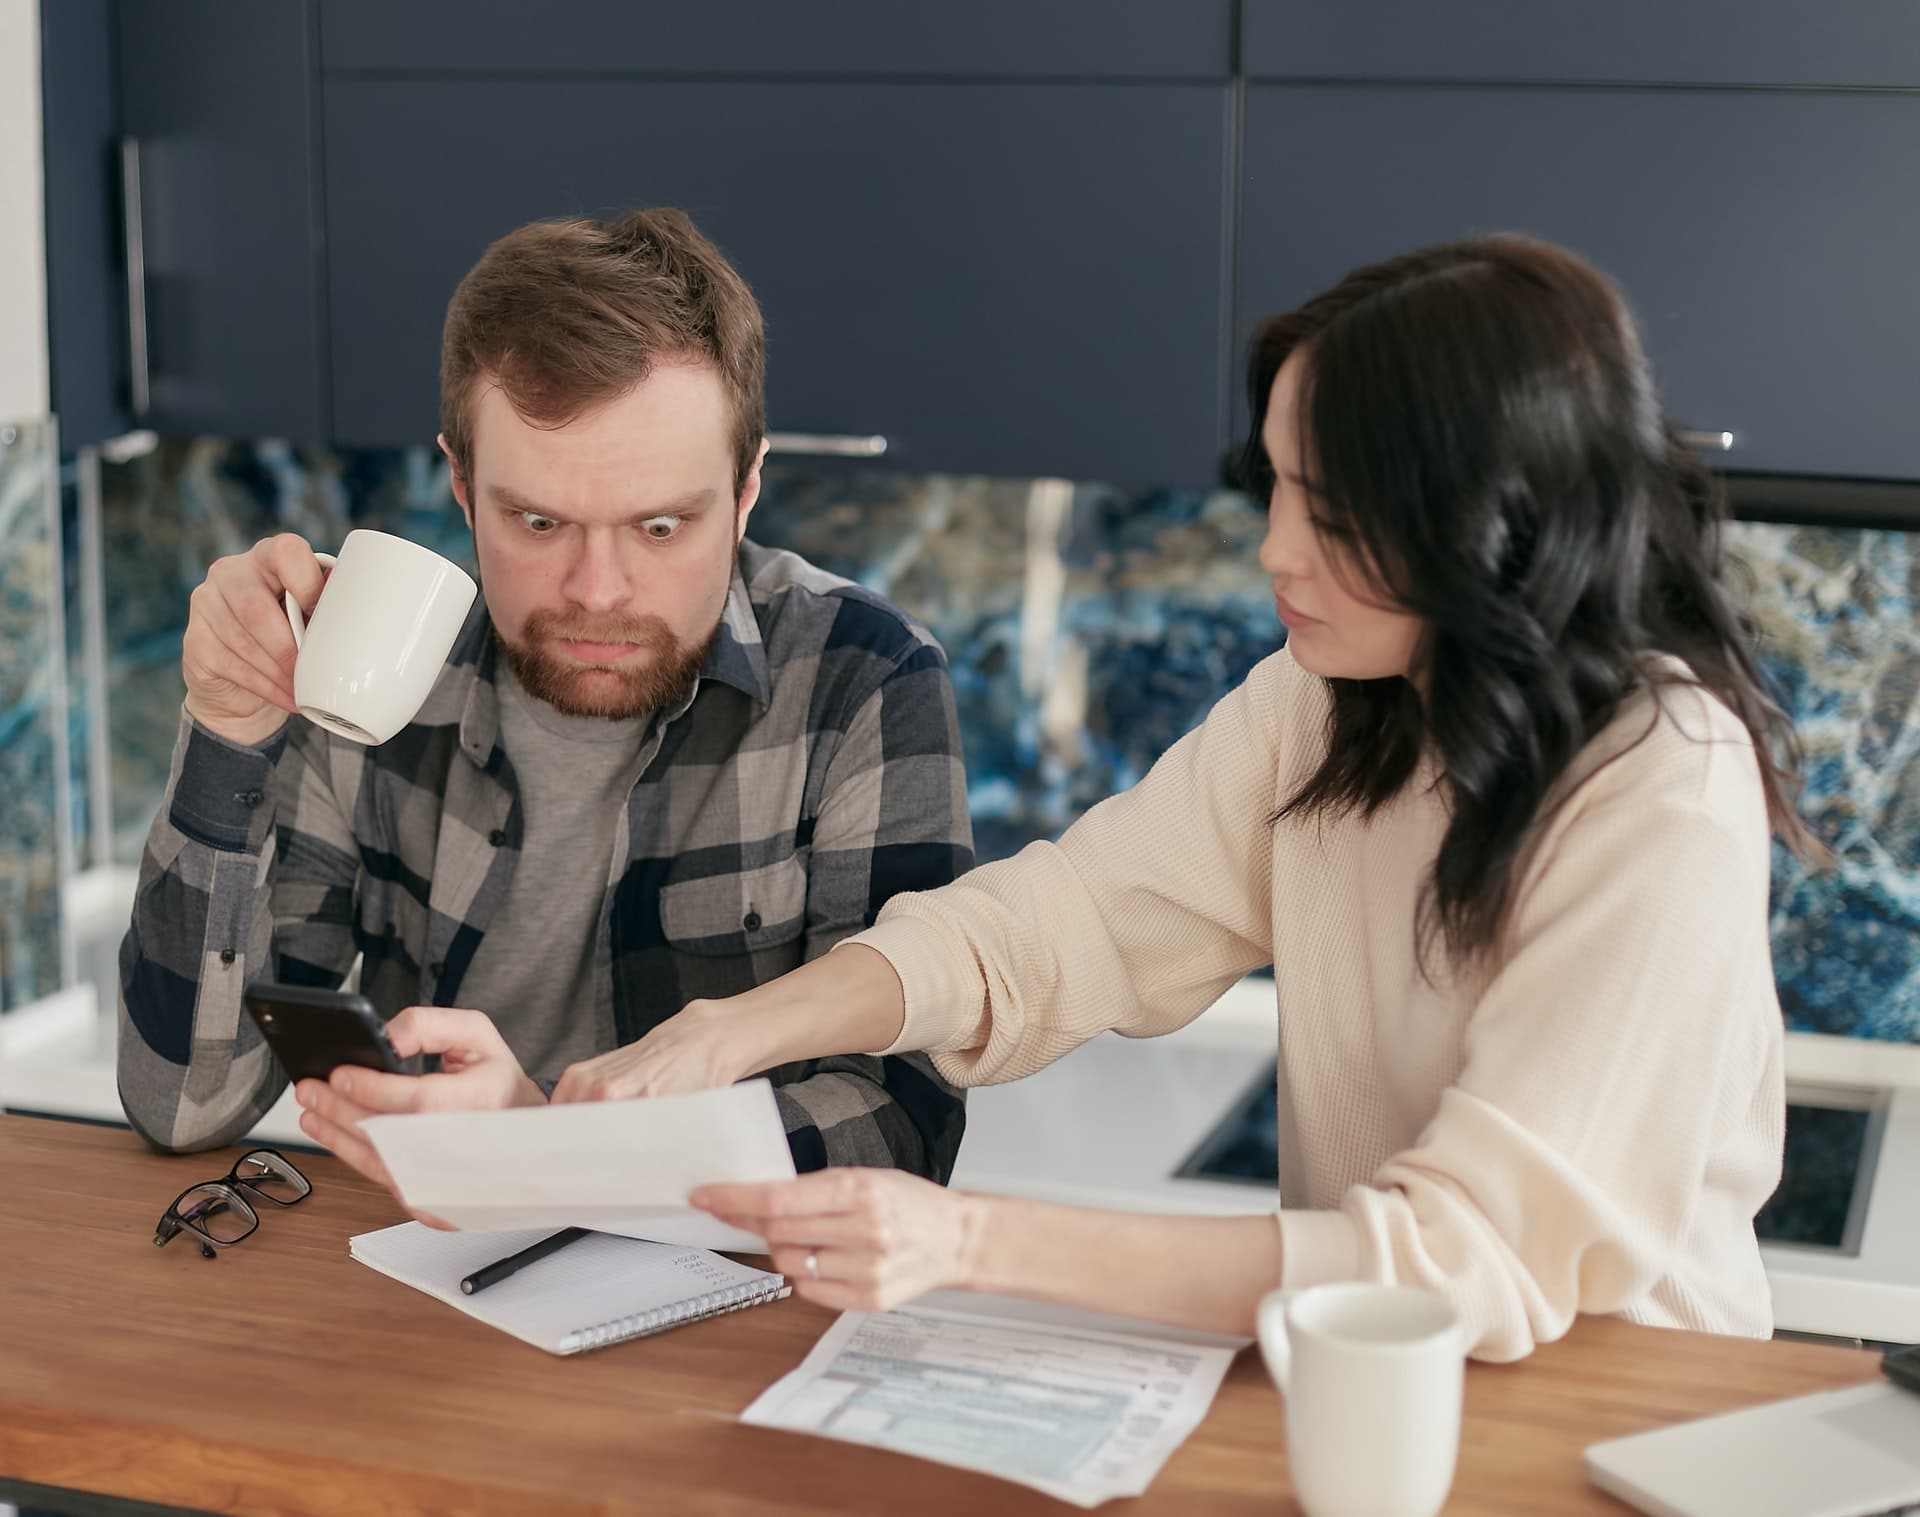 7 Accounting Mistakes Small Businesses Must Avoid